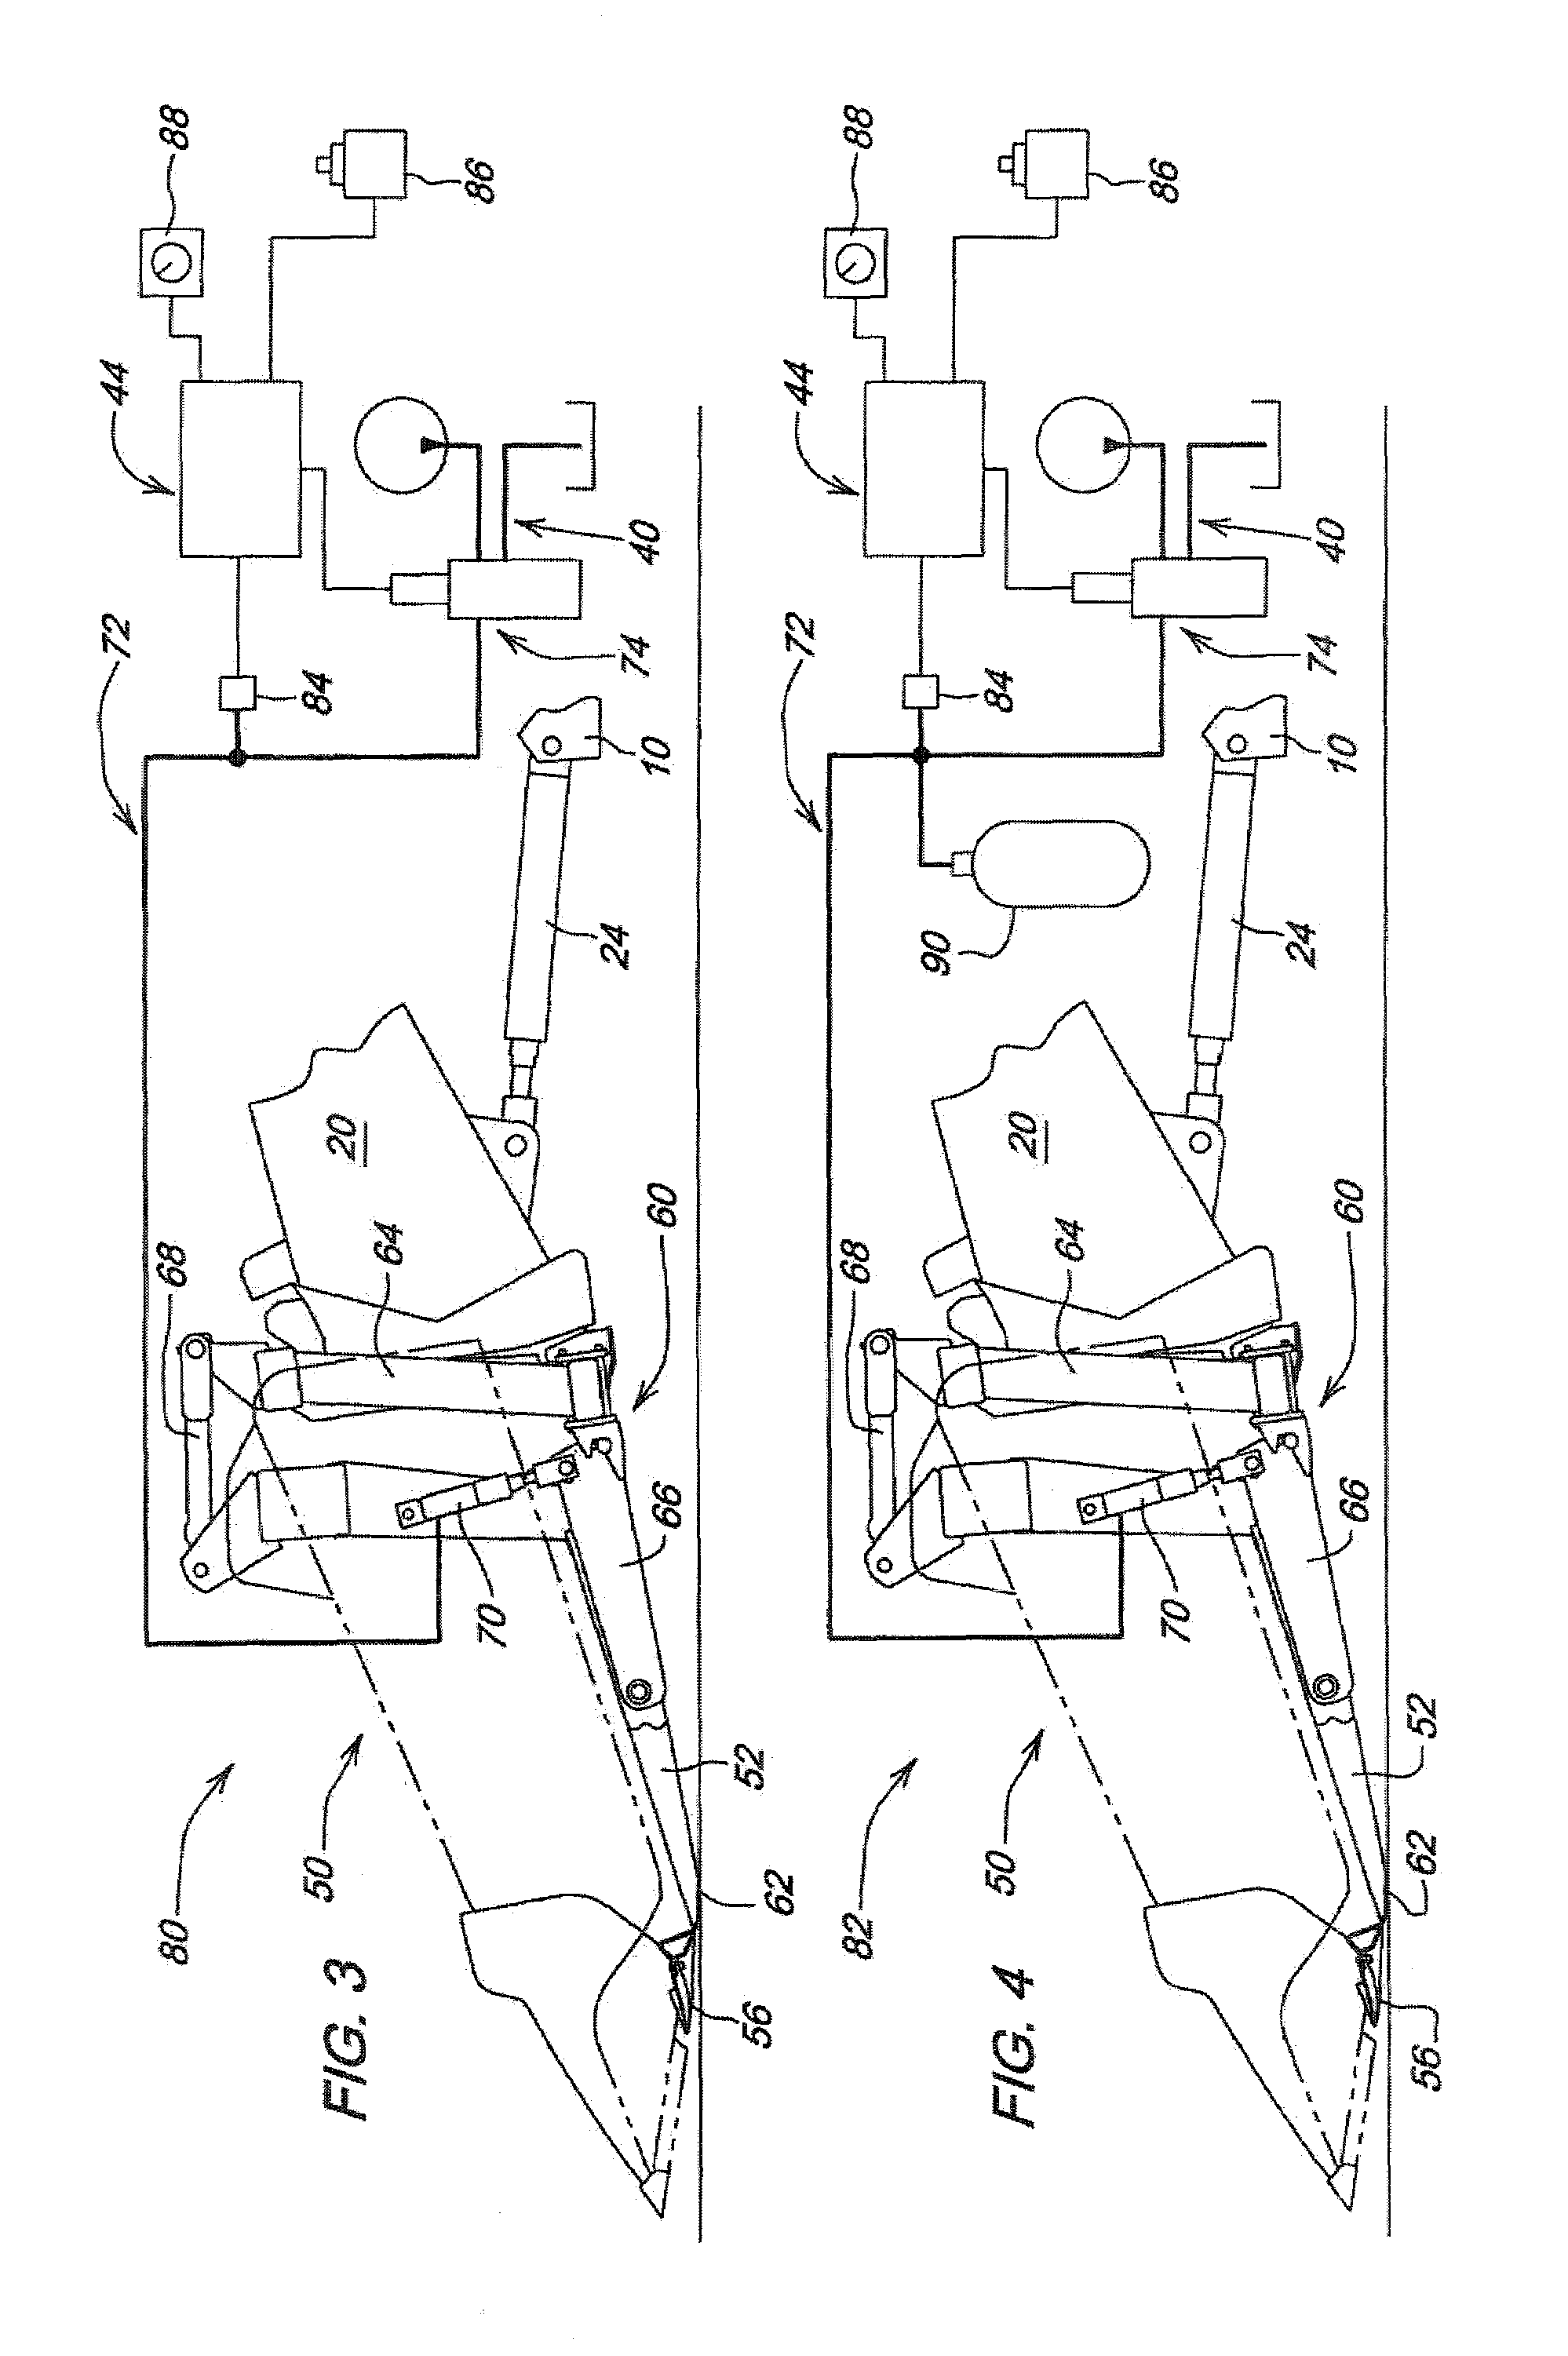 Patent Us 7430846 B2 Todd Engineering Schematics